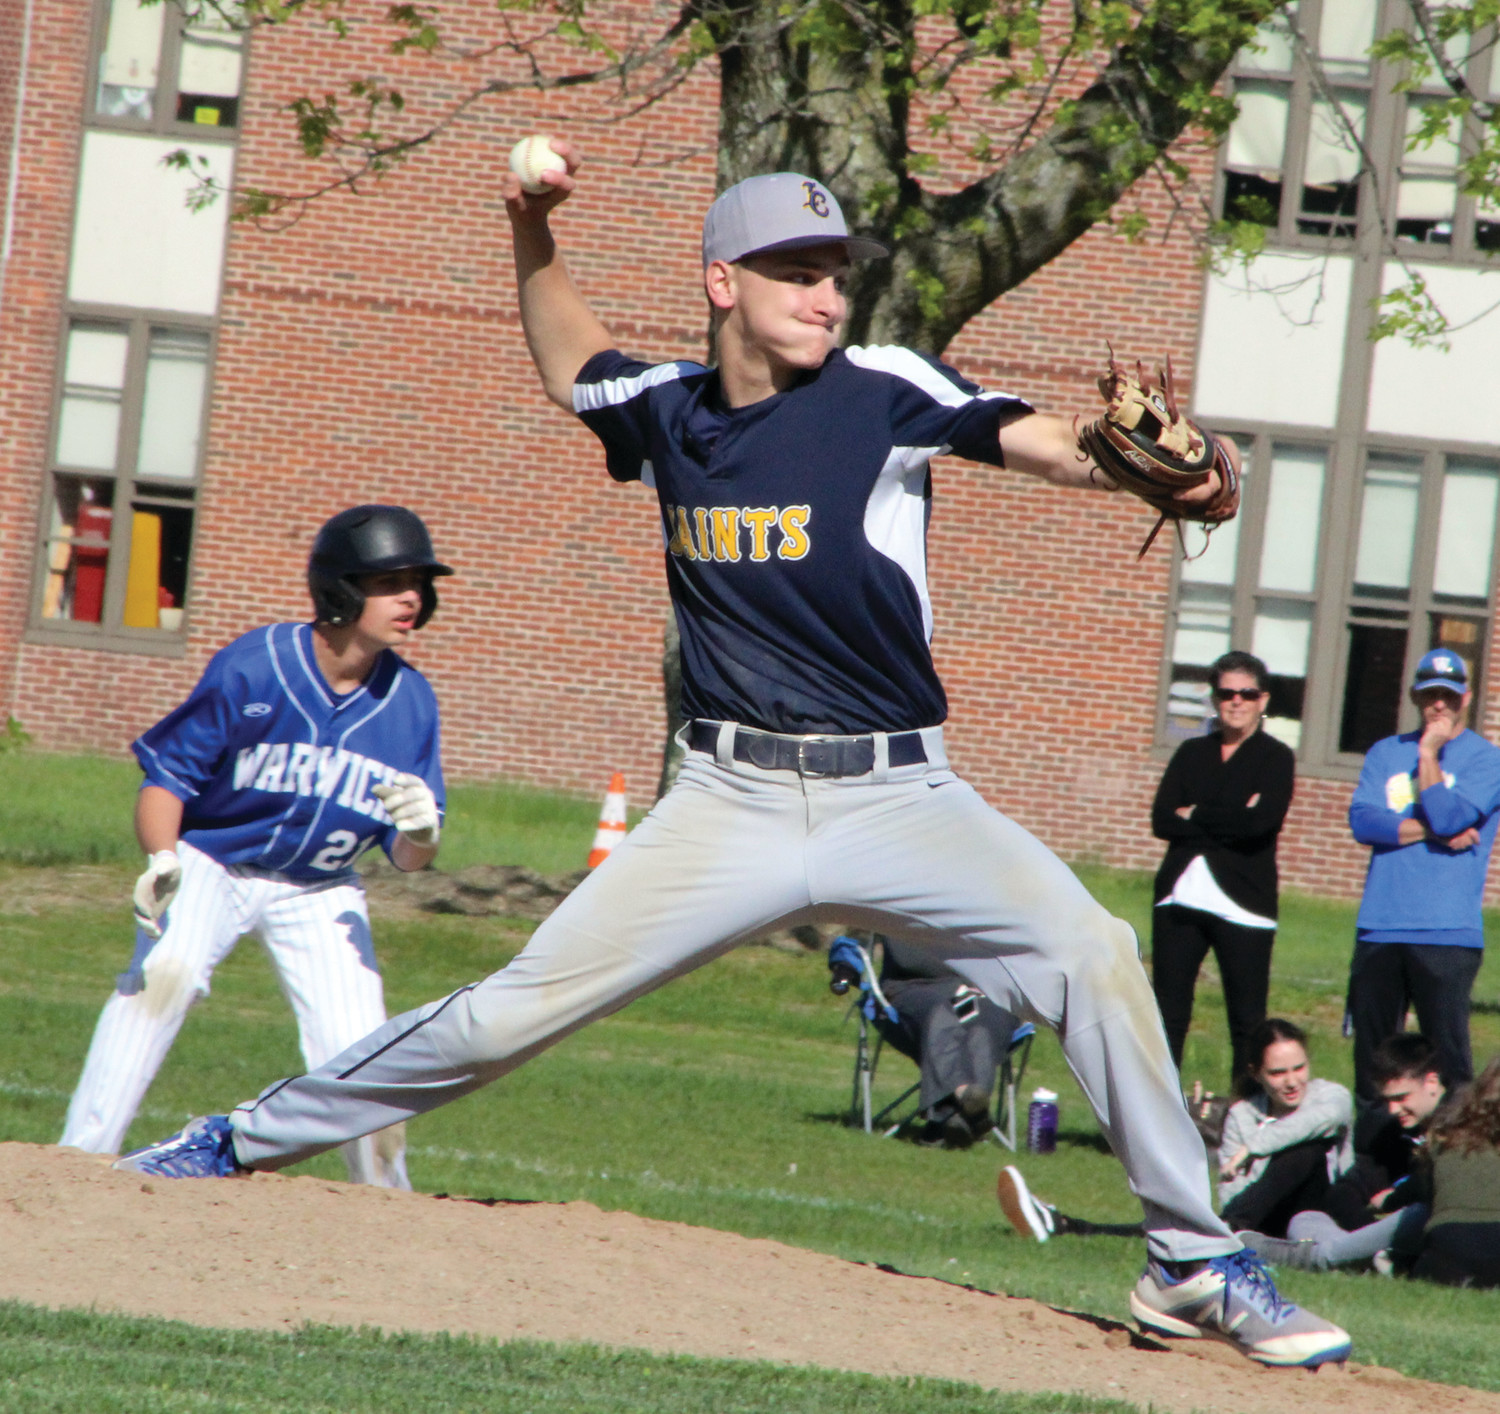 FALL BACK: Immaculate Conception's Colby Kuzman delivers a pitch against Vets on Monday.